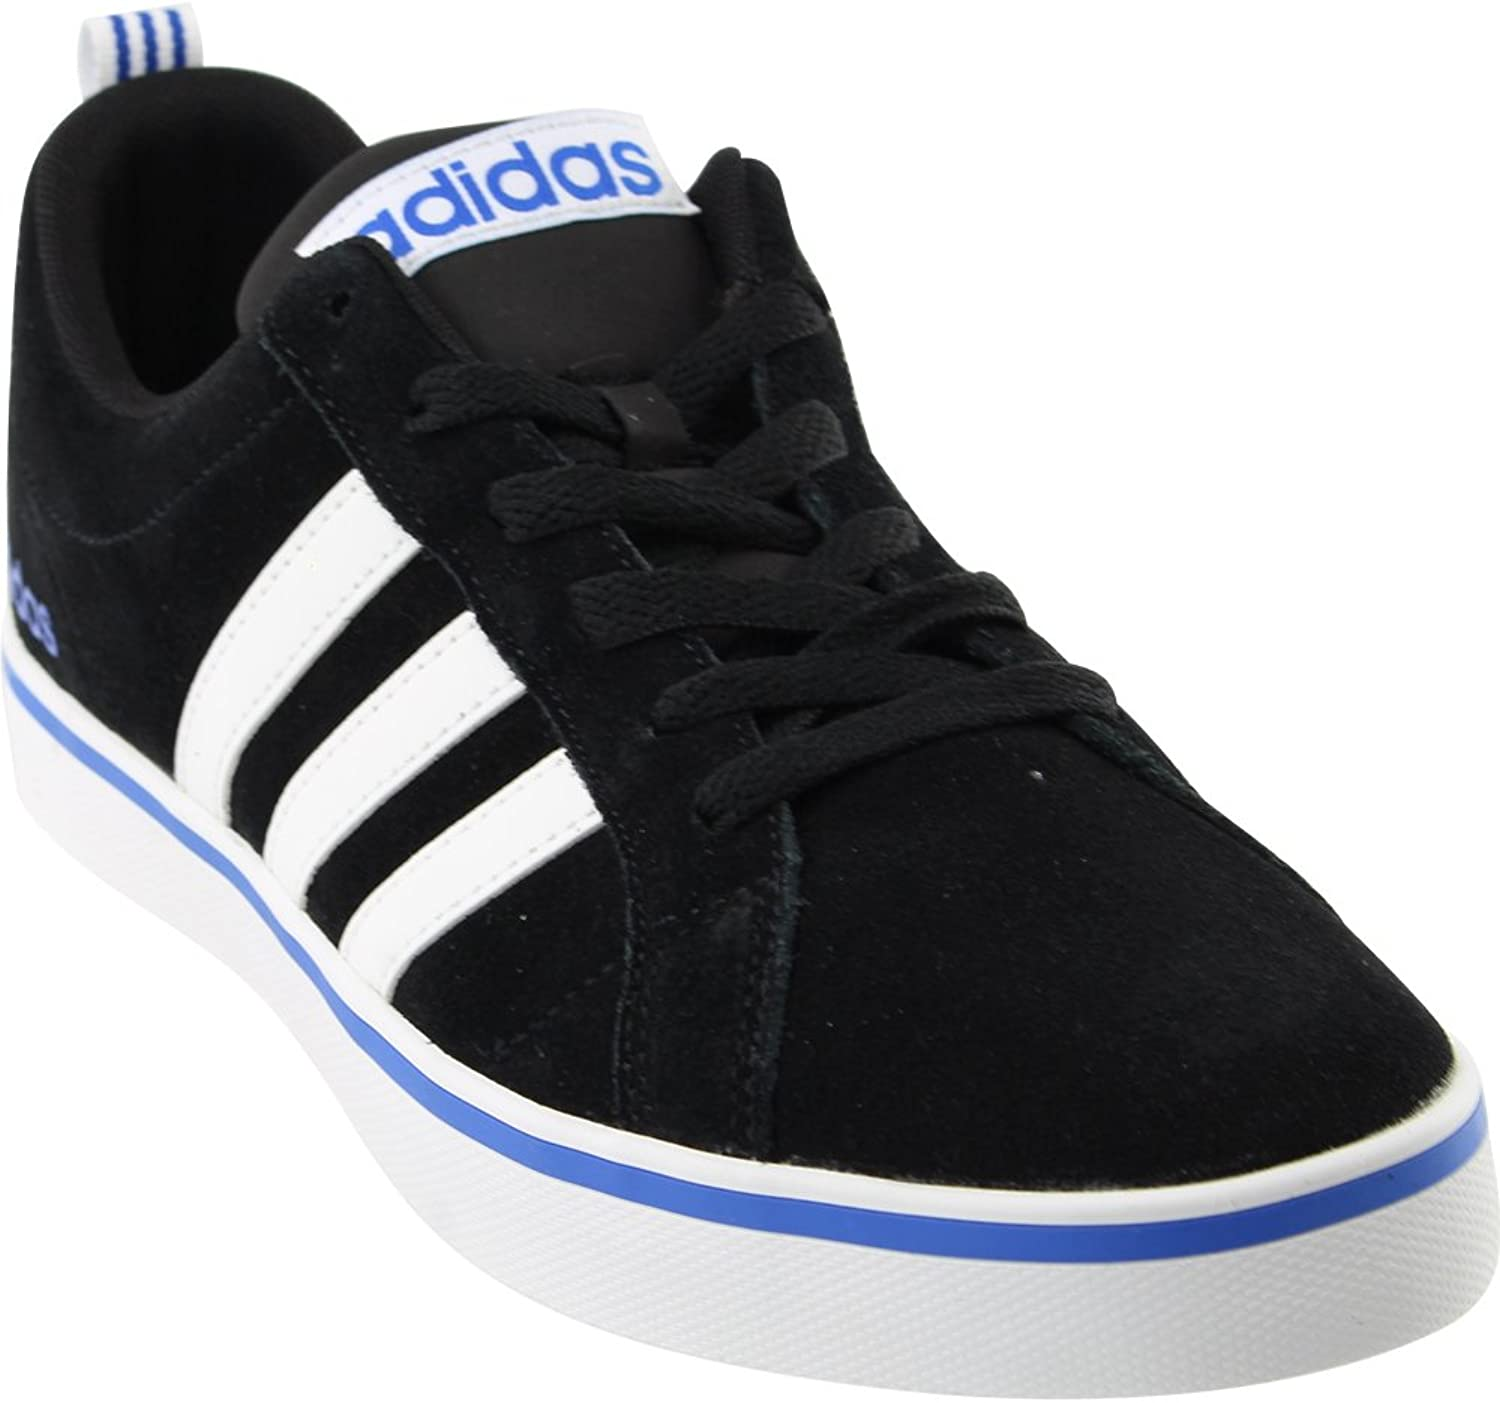 Adidas Men's Pace Plus Ankle-High Fashion Sneaker